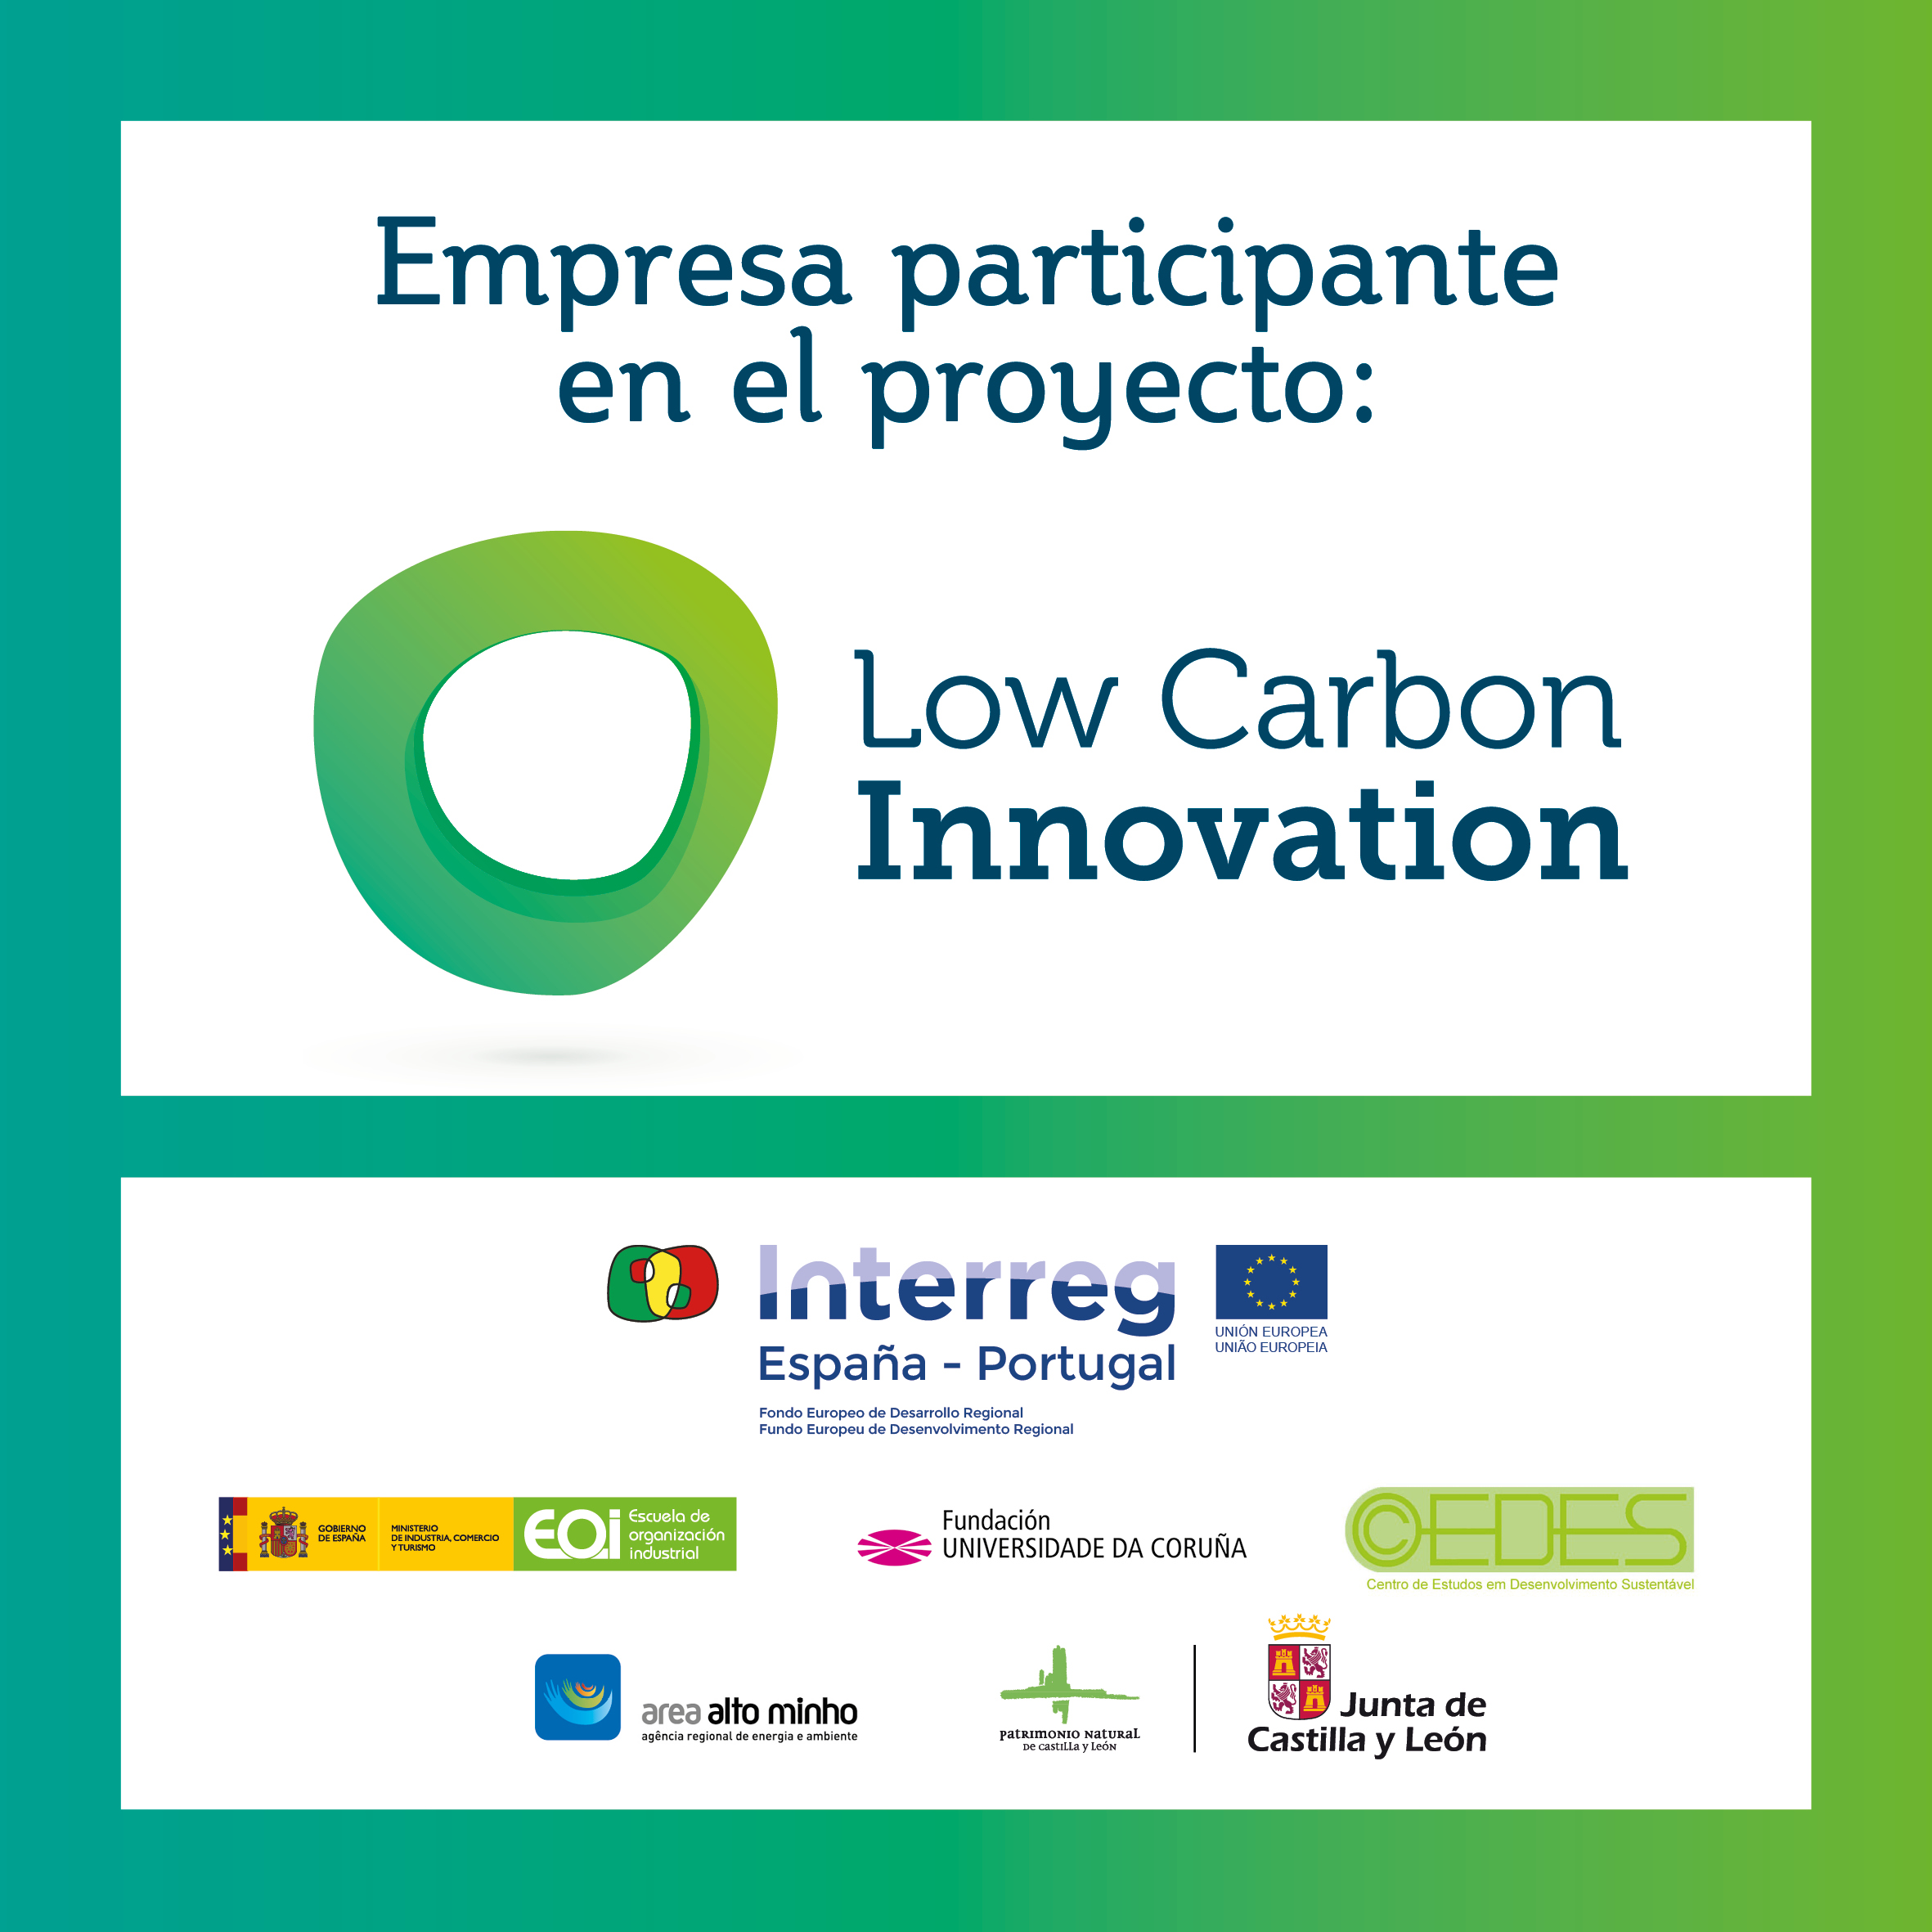 Low Carbon Innovation Company